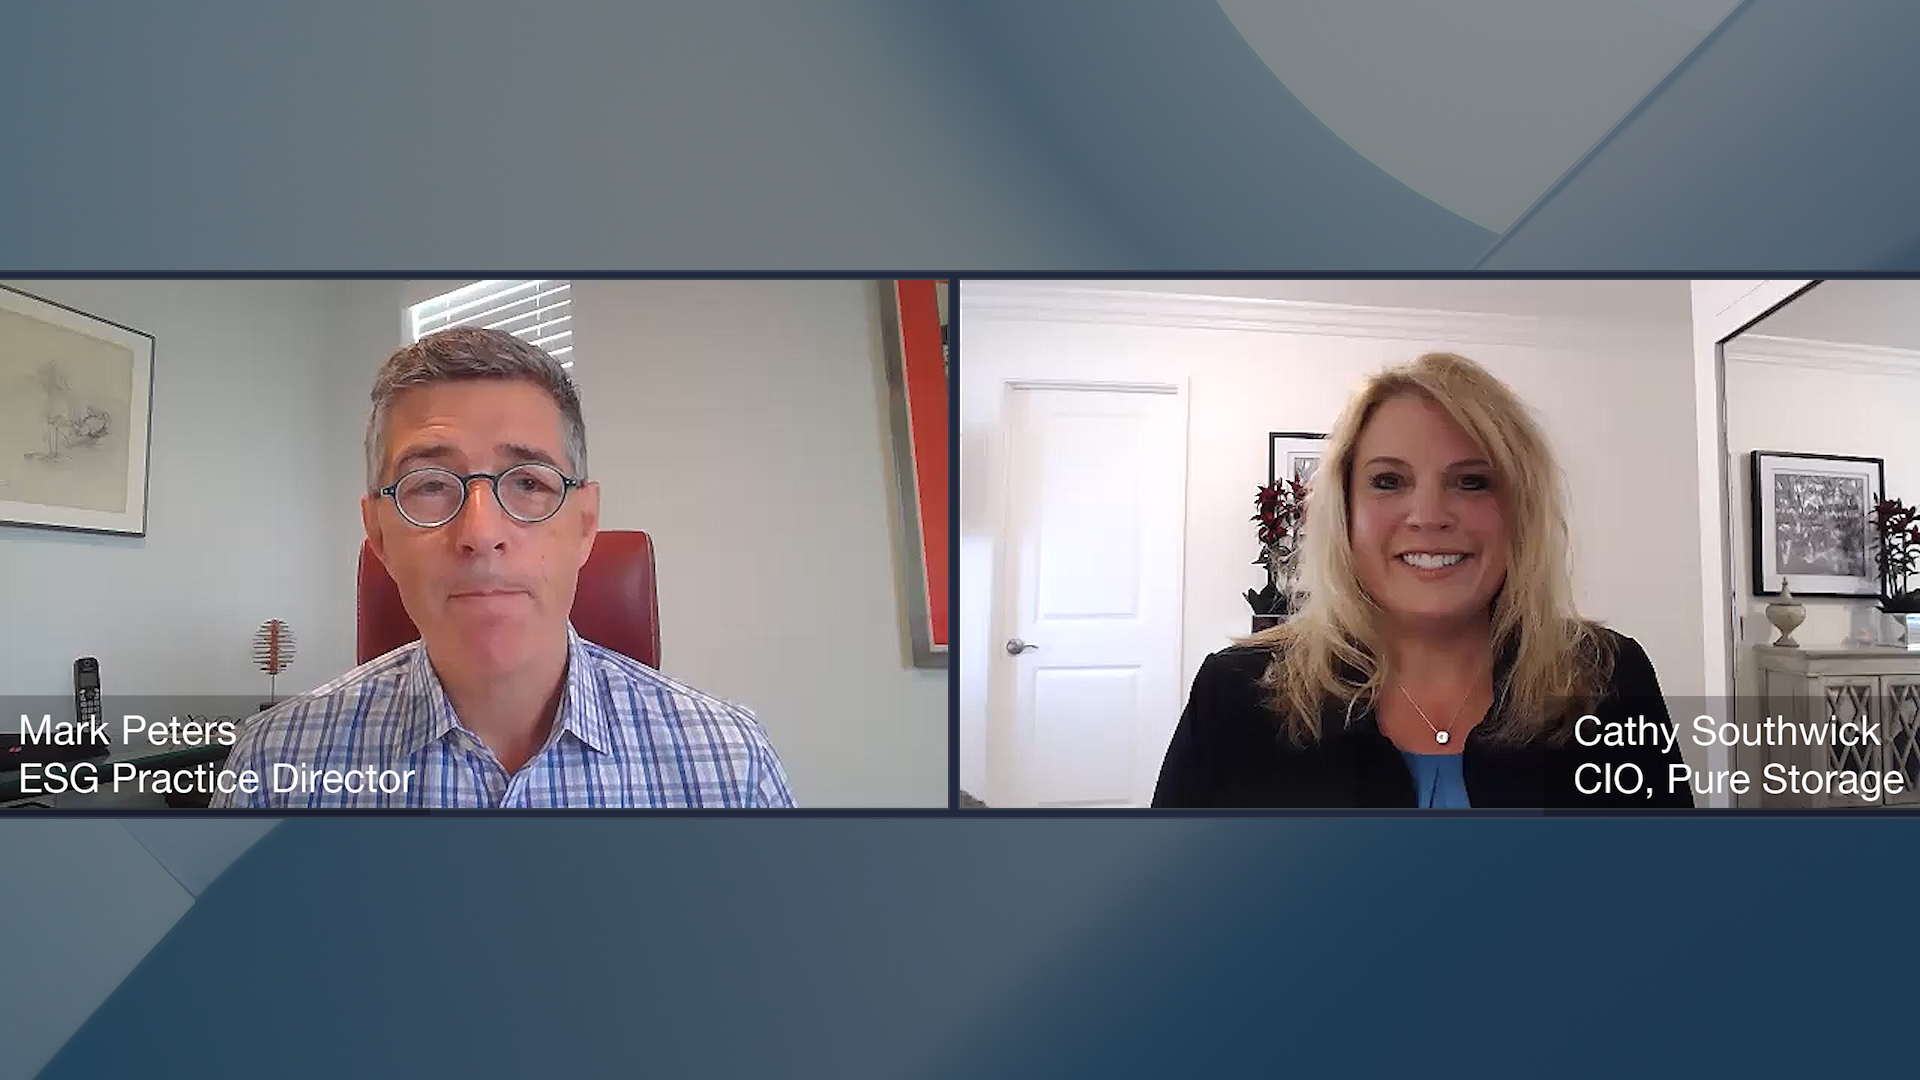 Marketing (and IT) in Challenging Times - in Conversation with Cathy Southwick of Pure Storage (Video)